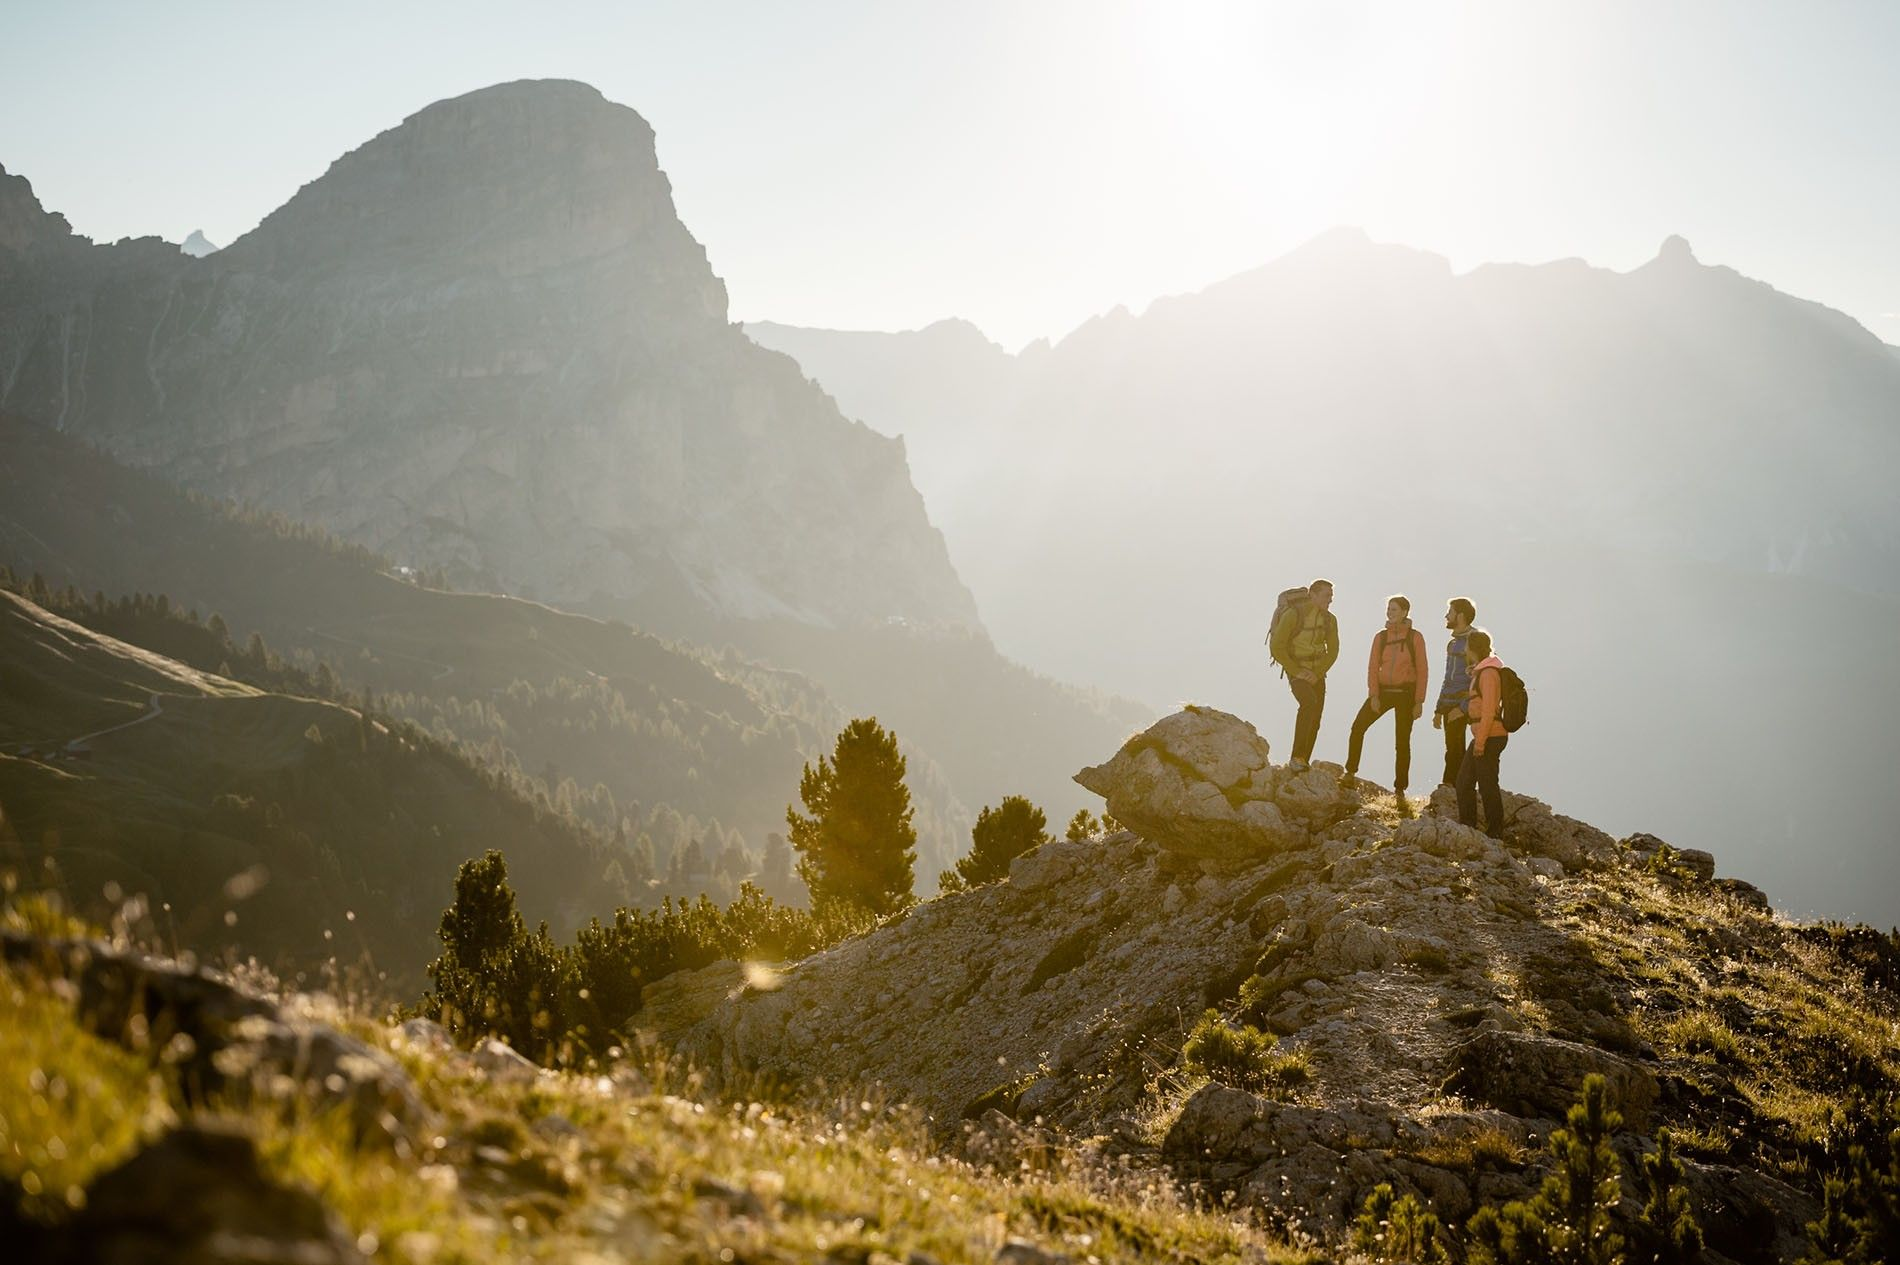 Hiking in the Dolomites in Alta Badia provides amazing views.